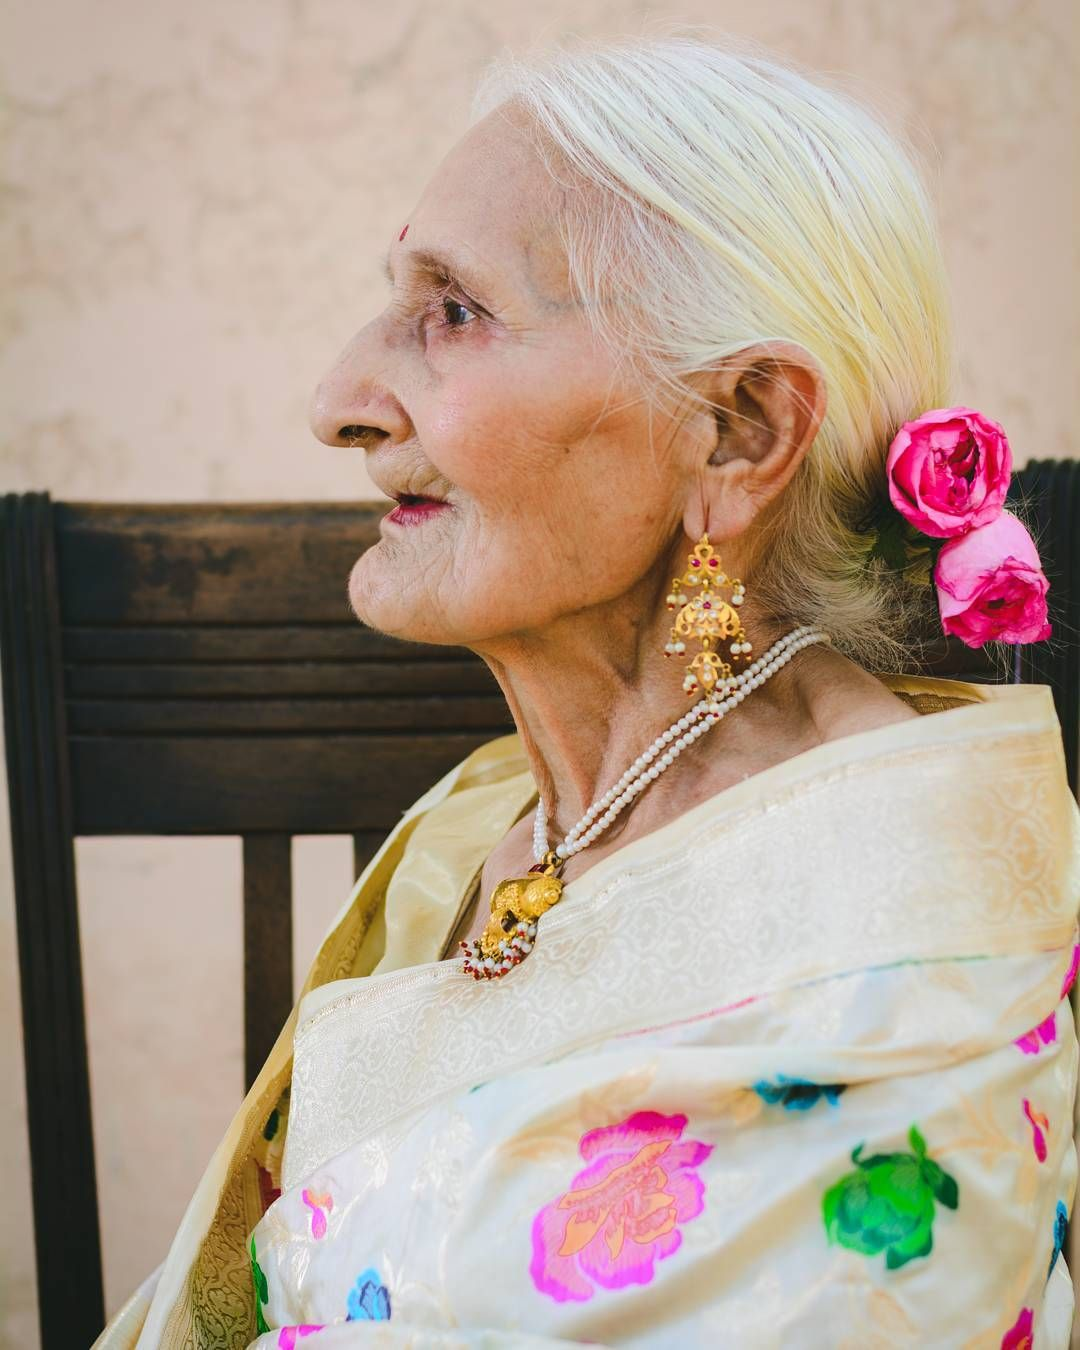 """1,185 Likes, 83 Comments - Divya (@thepowderpuffgal) on Instagram: """"LEGACY OF STYLE - I introduce to you Shirimati Sudarshana Sharma, my grandma and of the most…"""""""